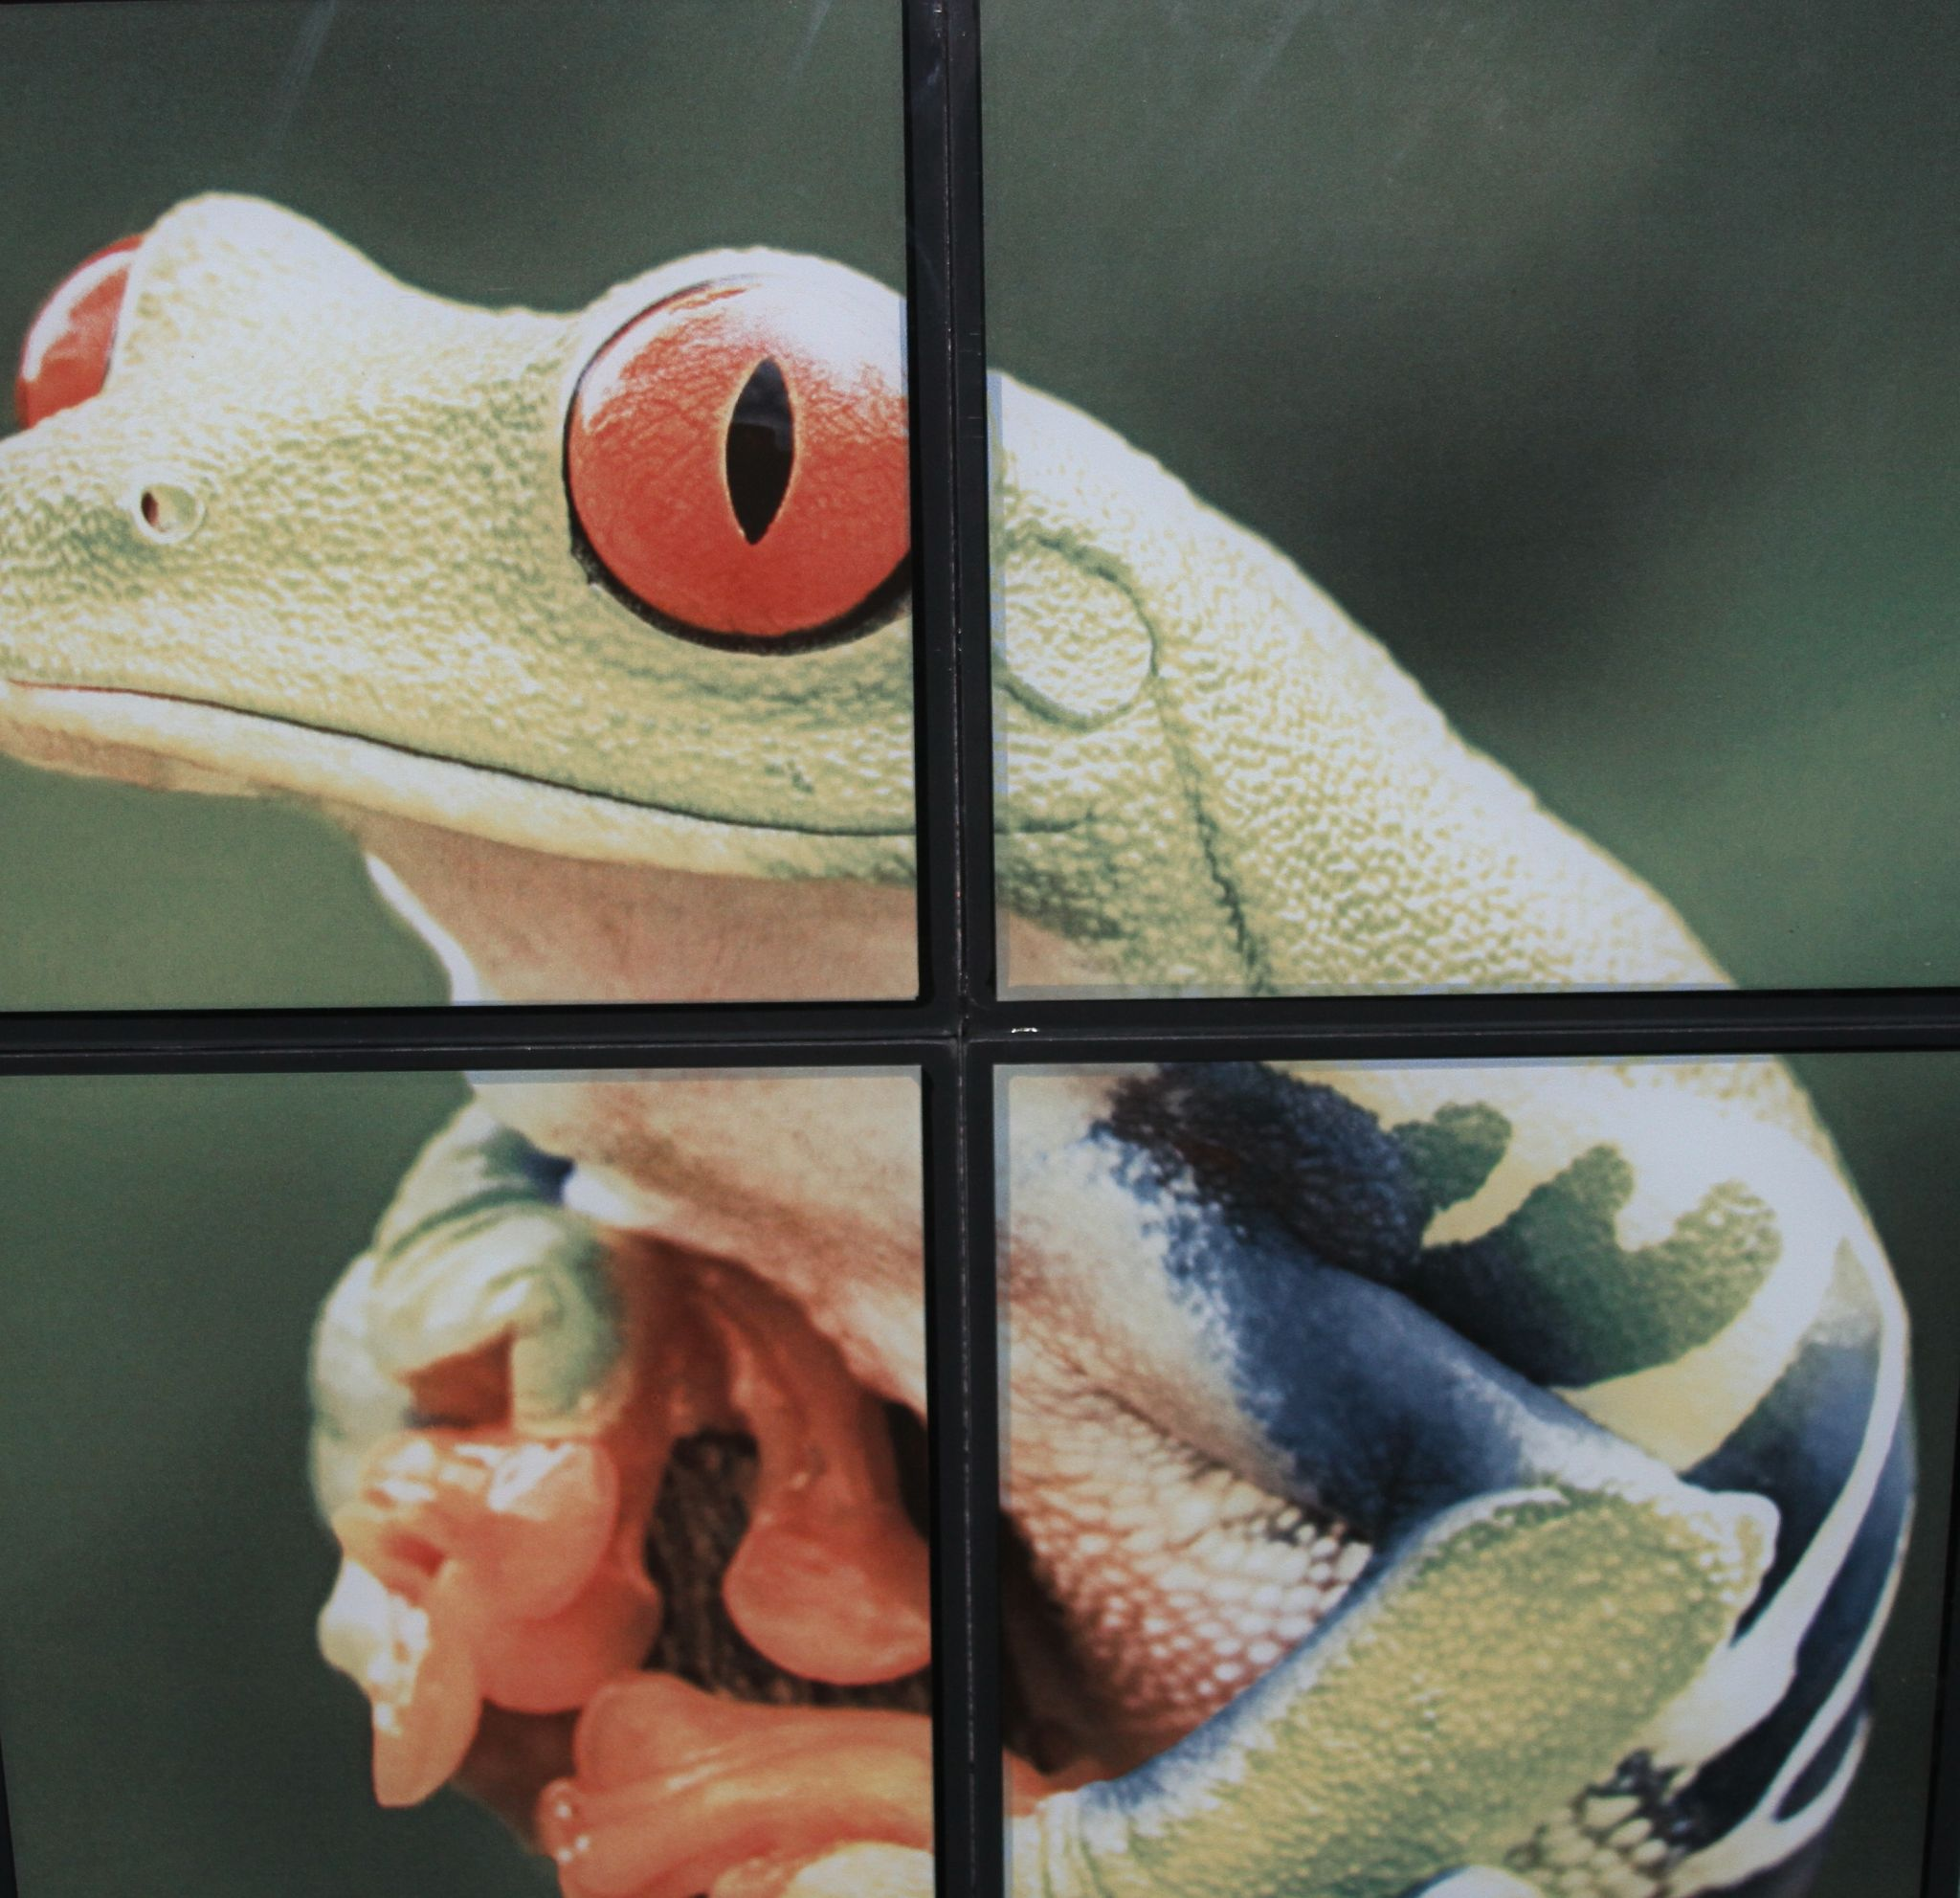 The Proprietary Software Adjusts Image To Correctly Print Across Multiple Lites Of Glass